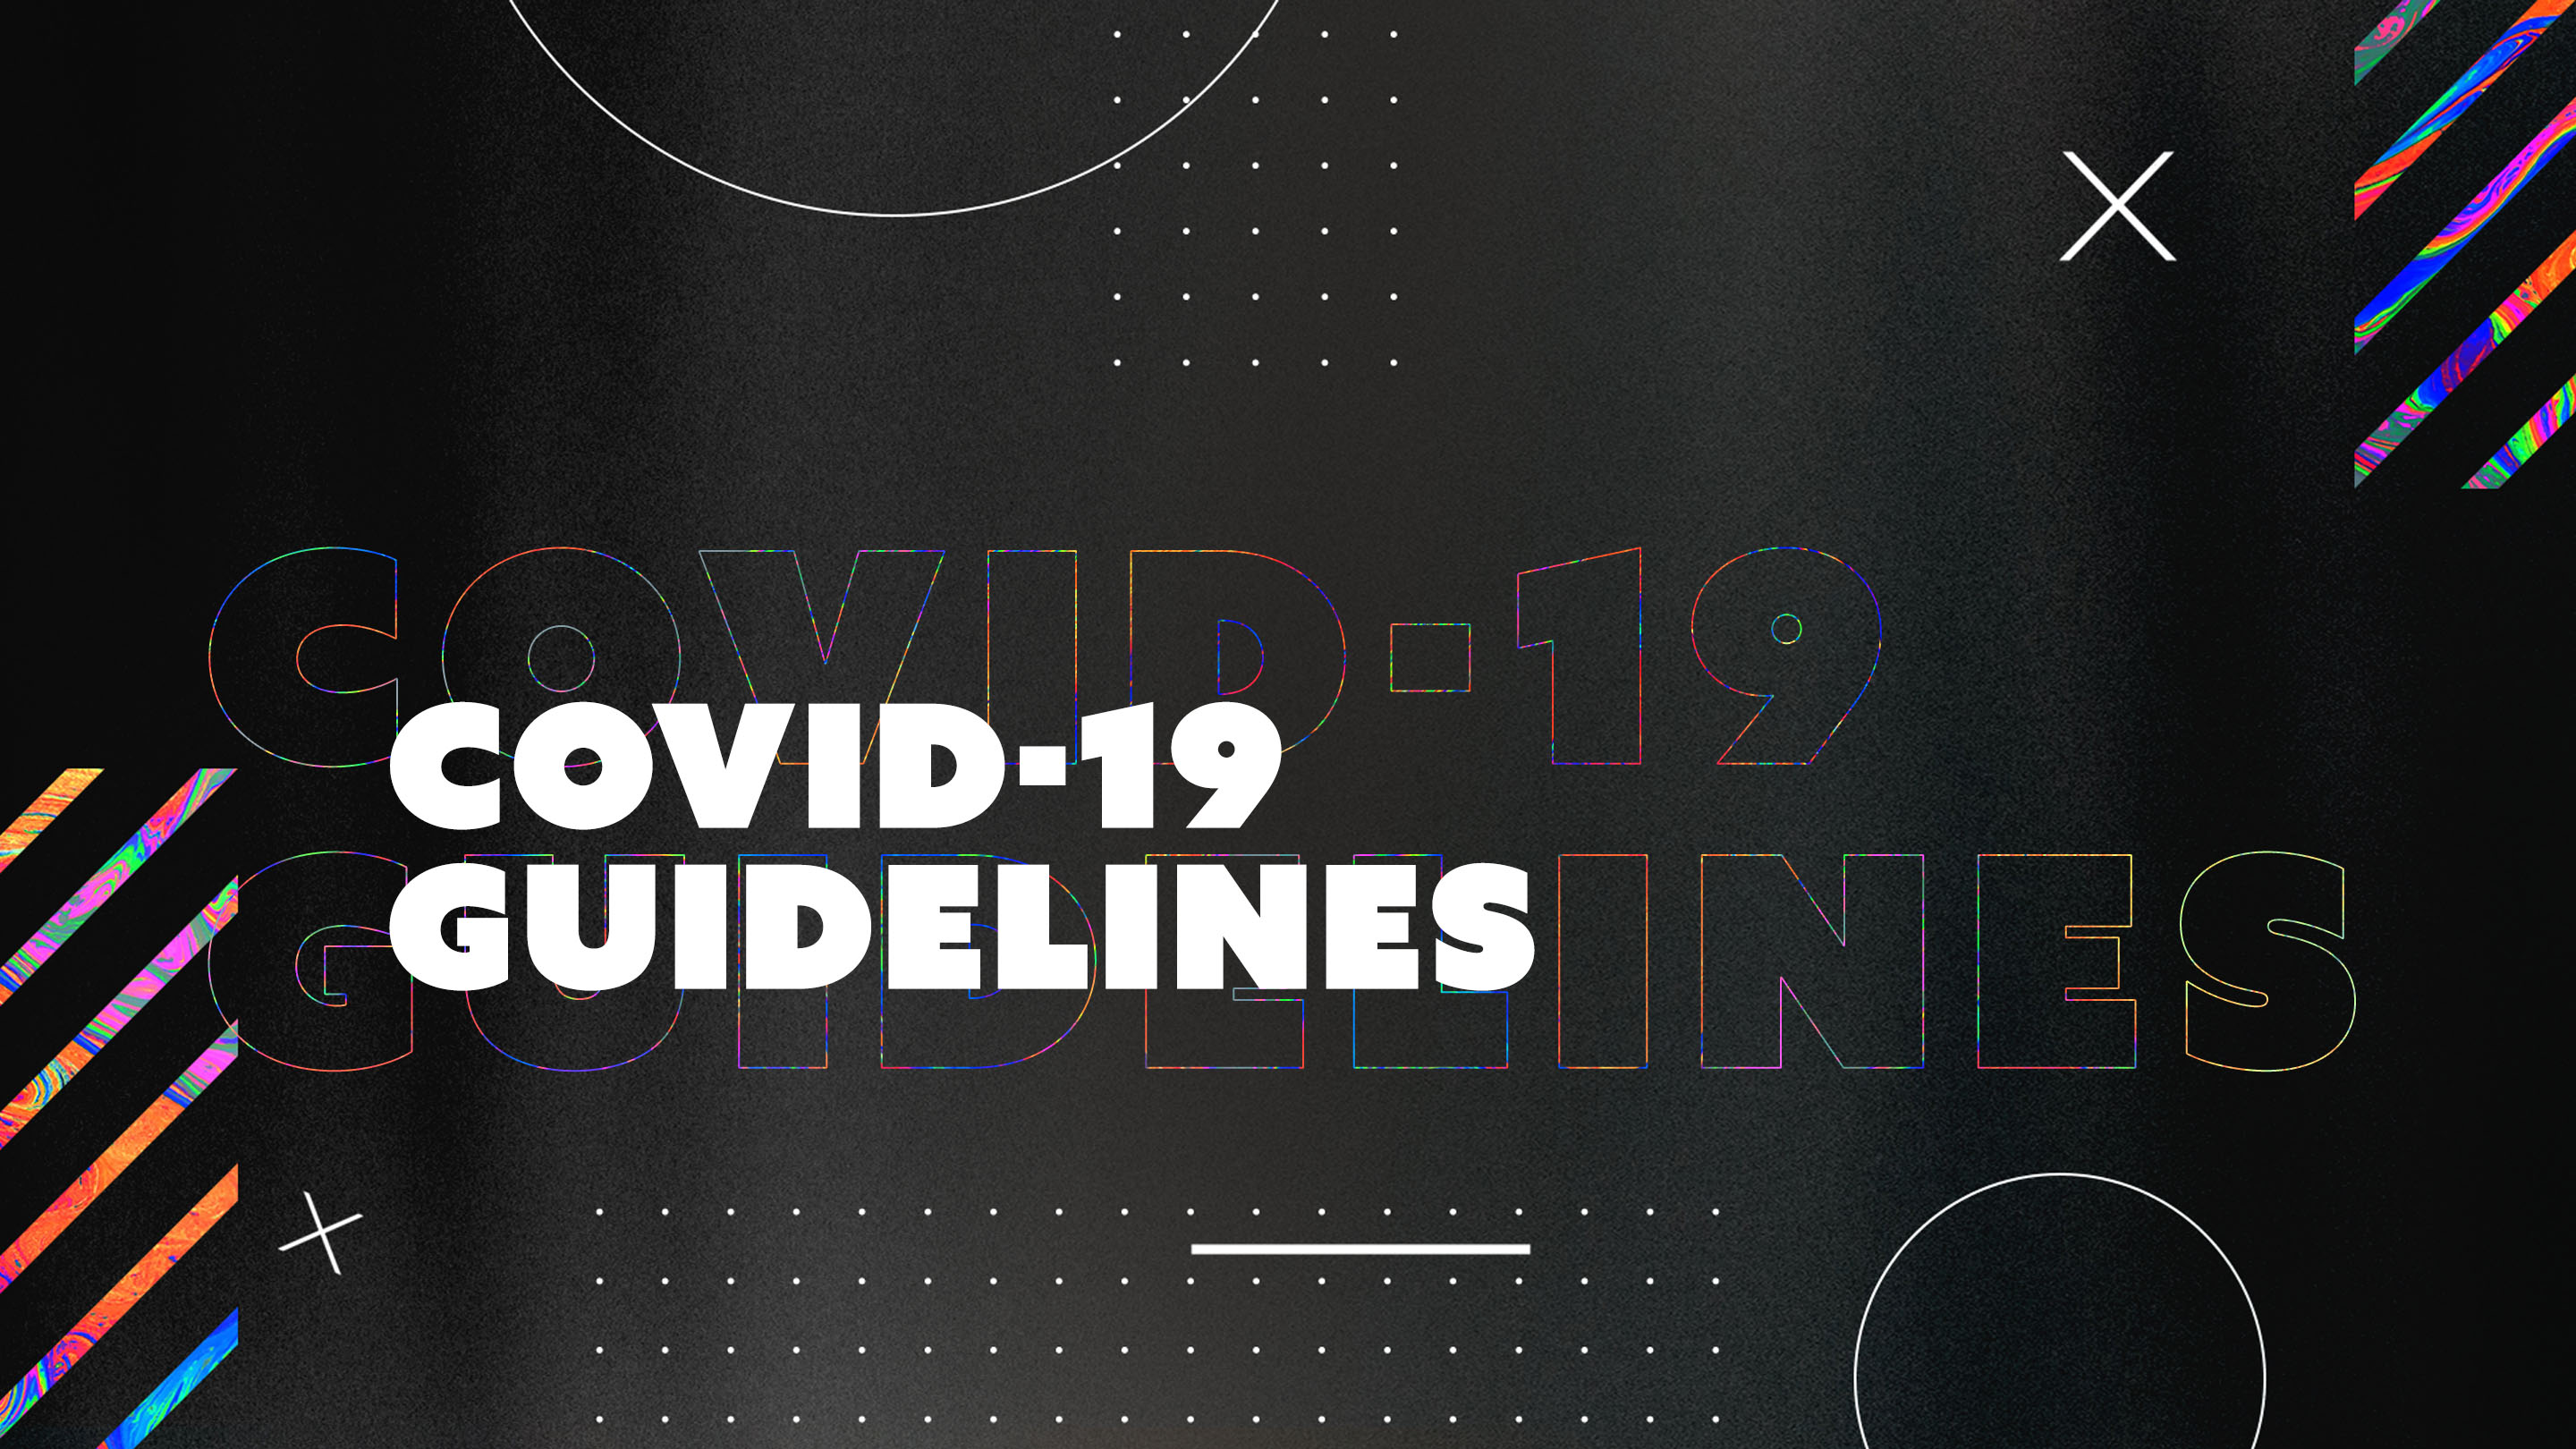 UPDATED Guidelines